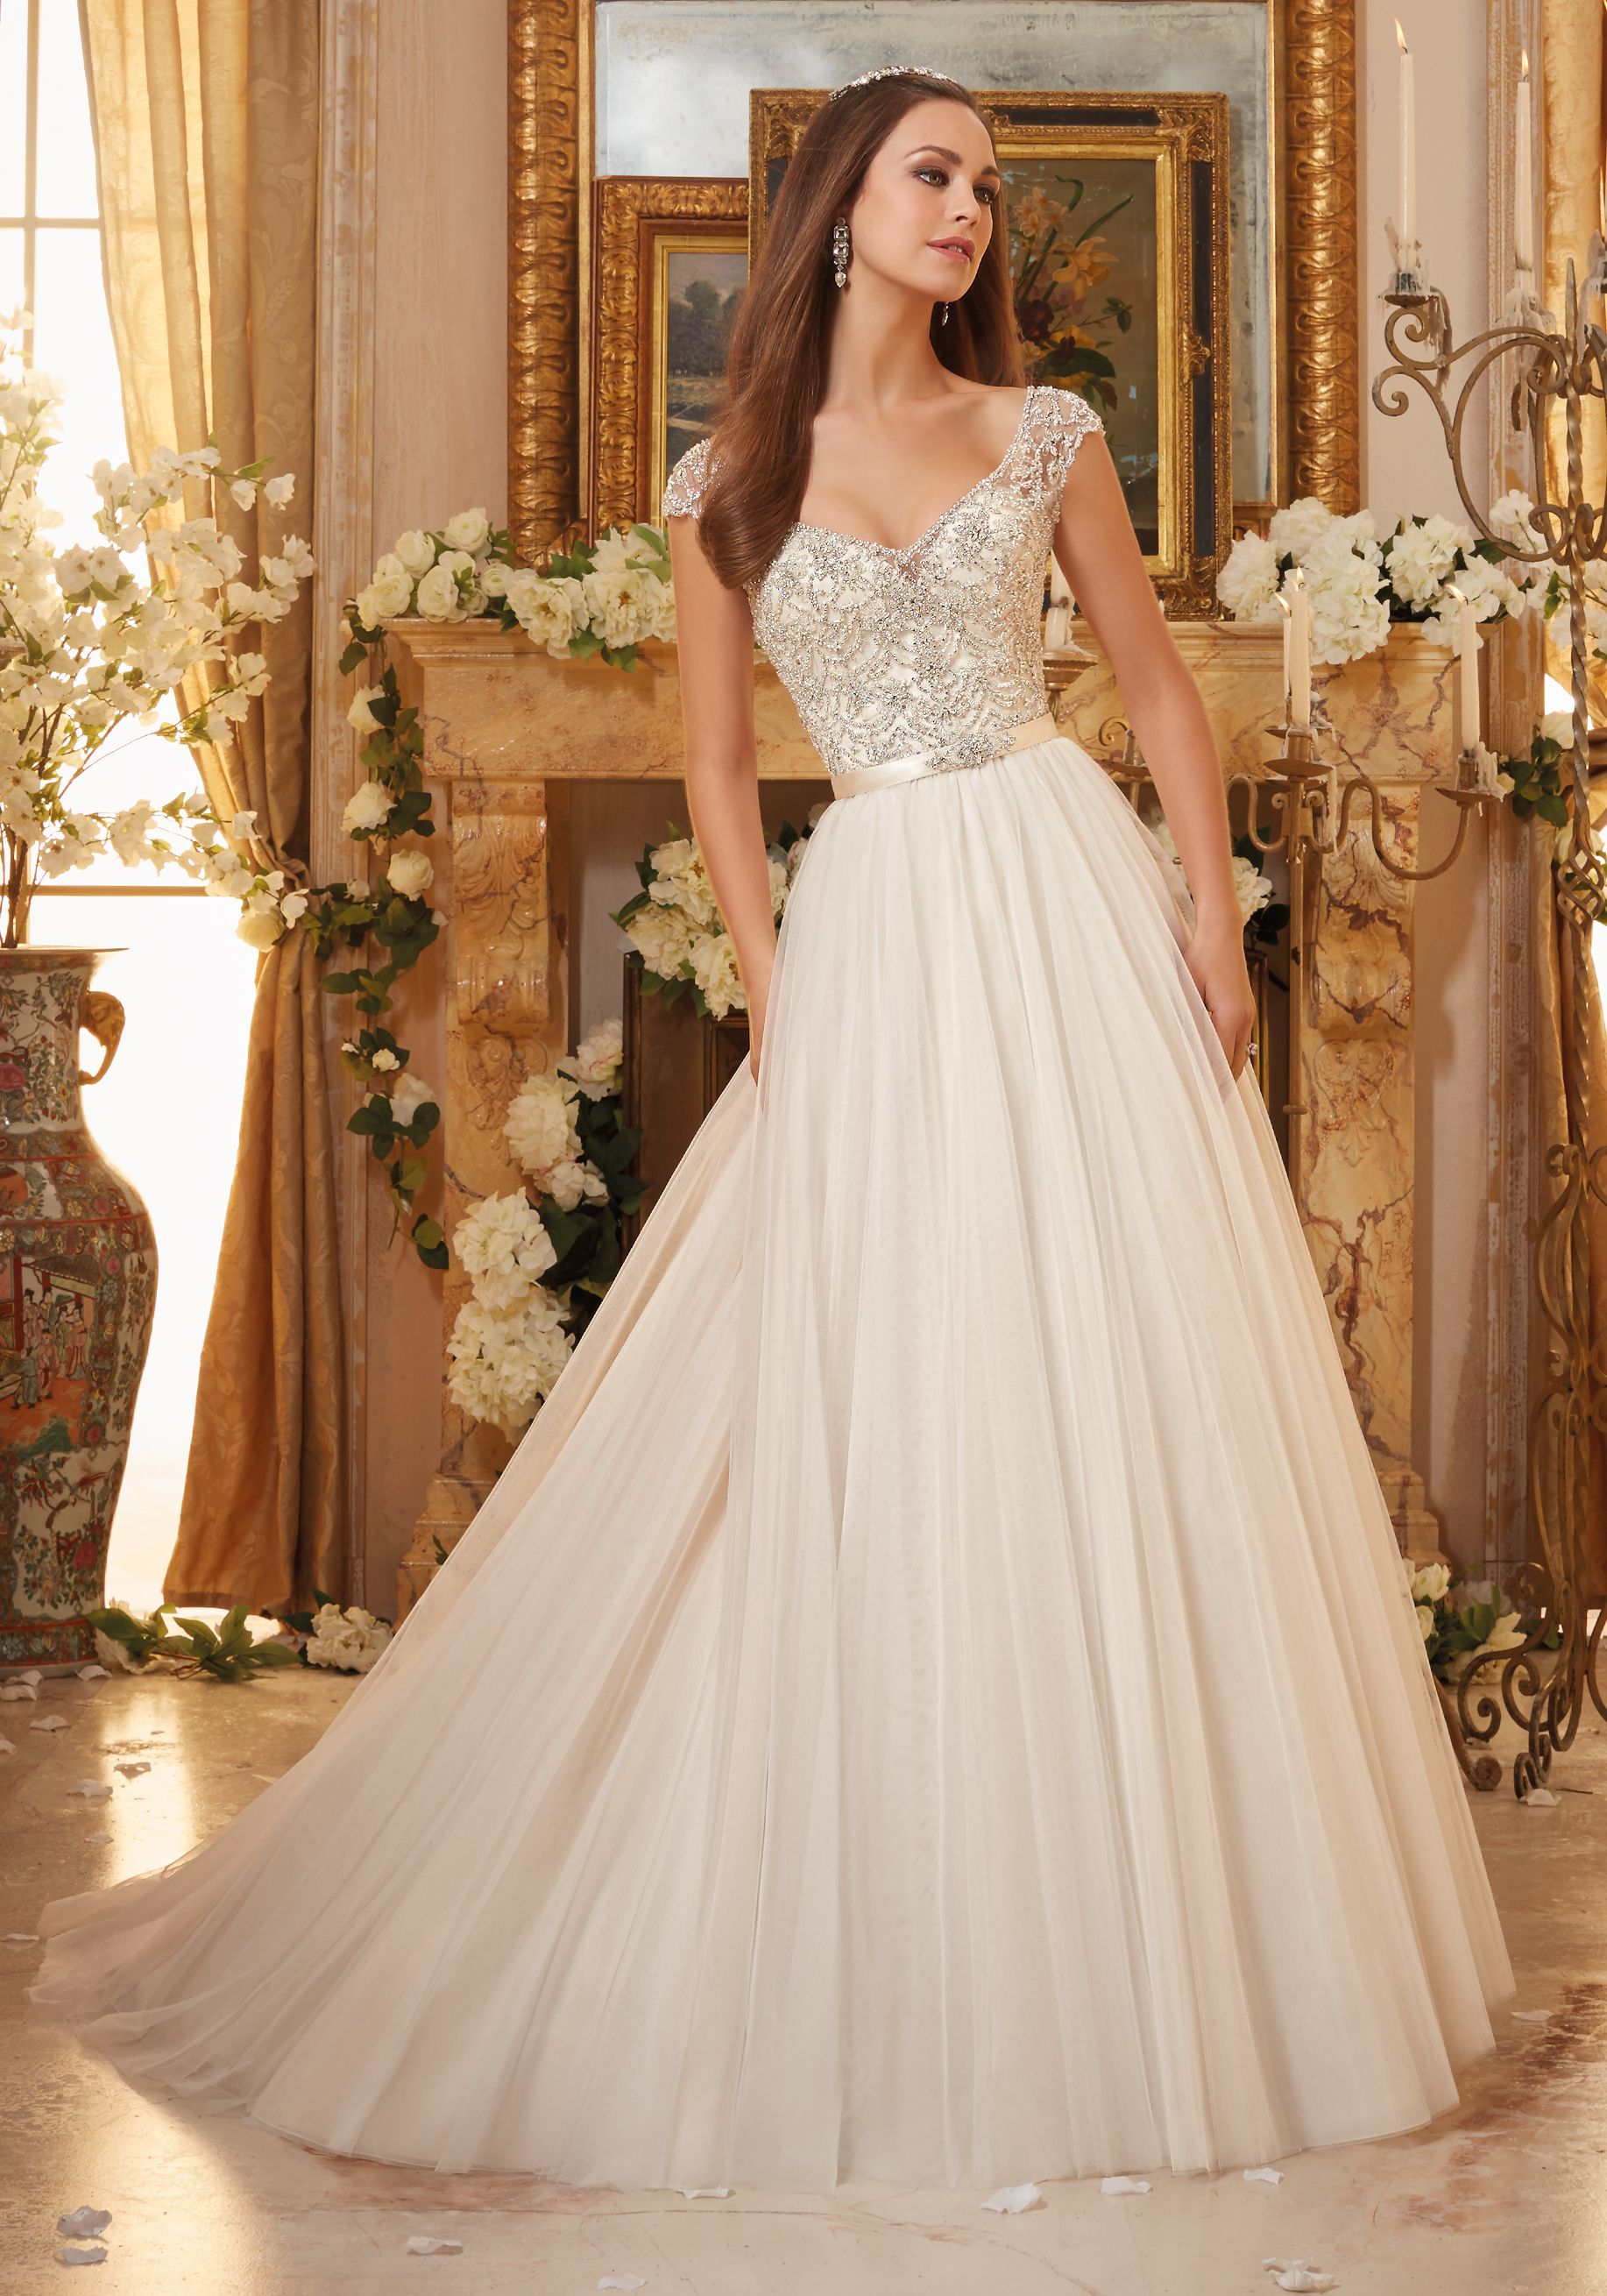 Crystallized Embroidery on Soft Tulle Ball Gown Morilee Bridal ...